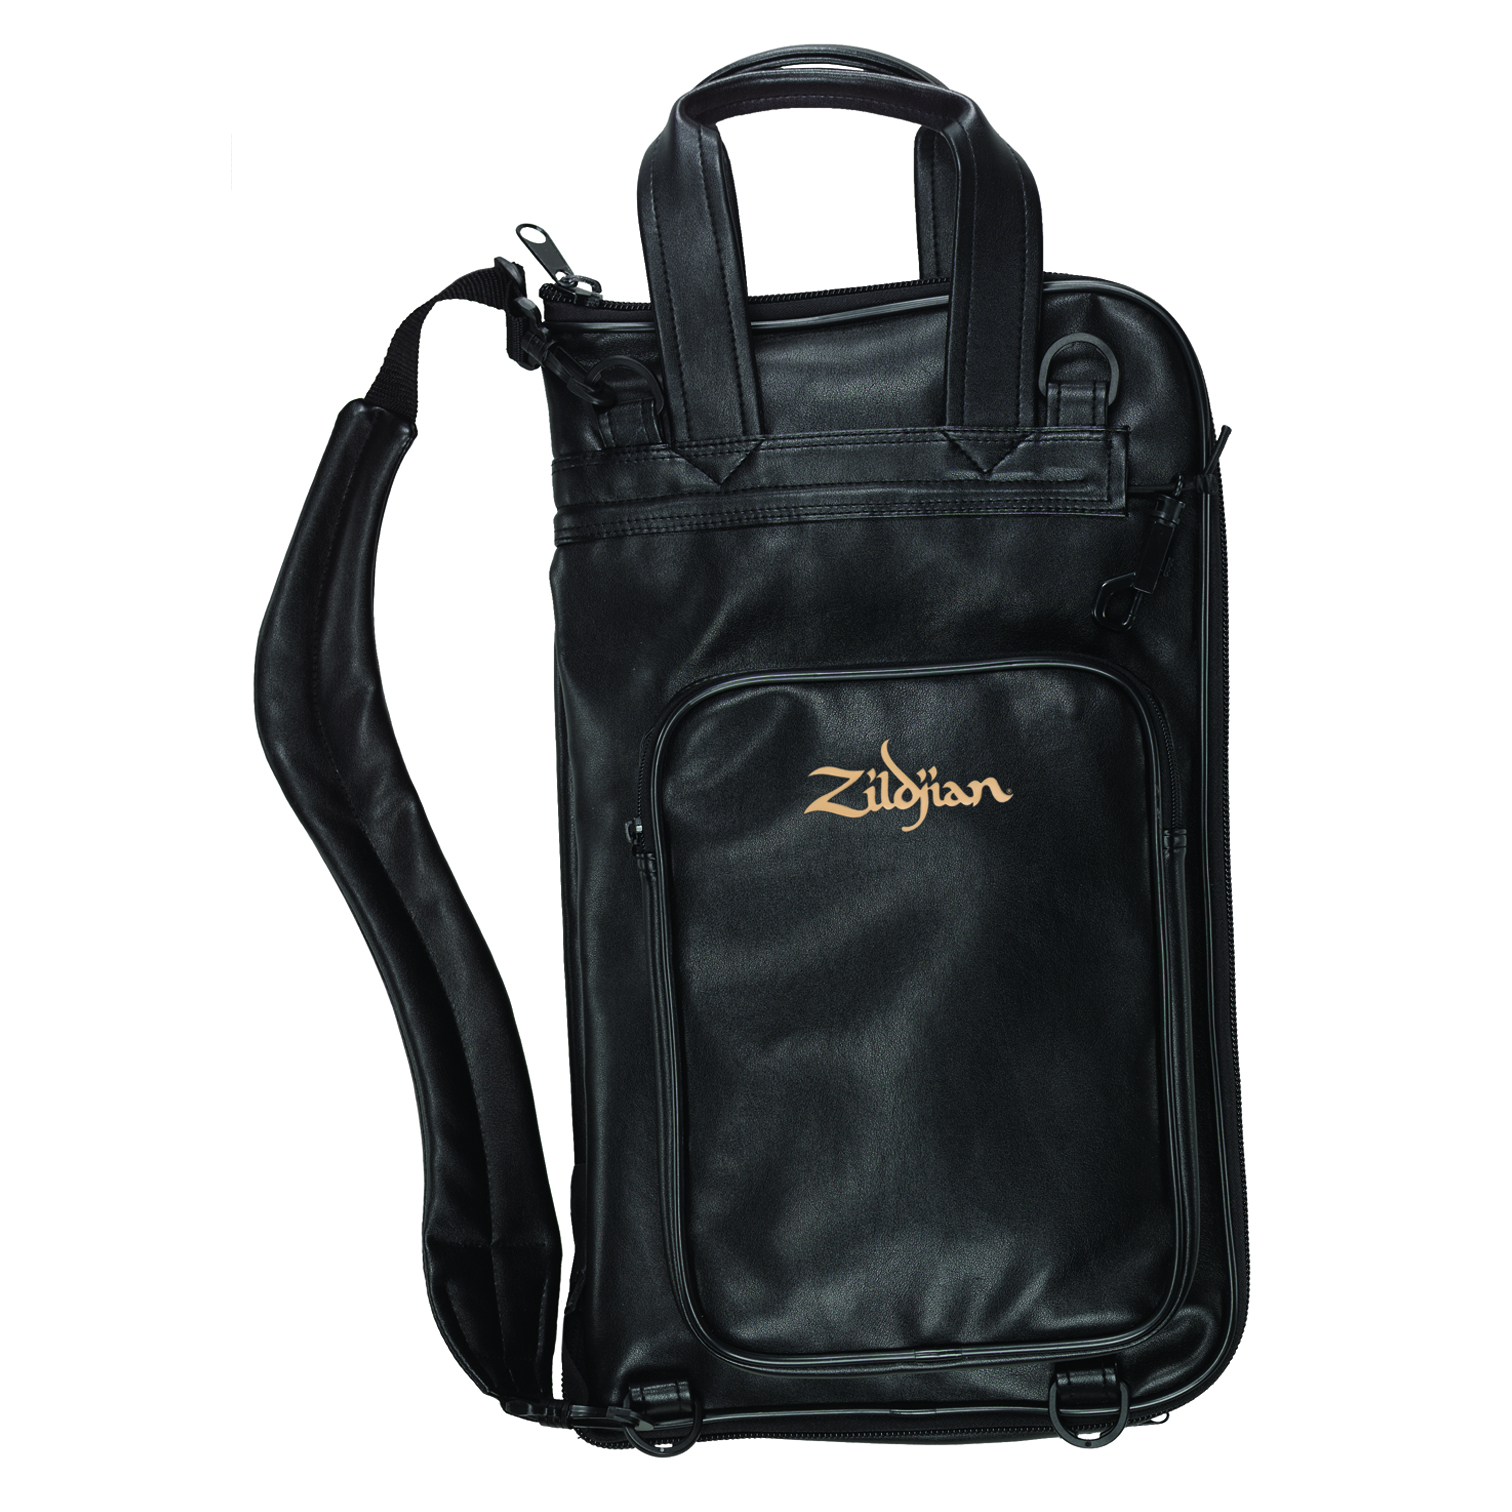 Zildjian Synthetic Leather Session Stick Bag